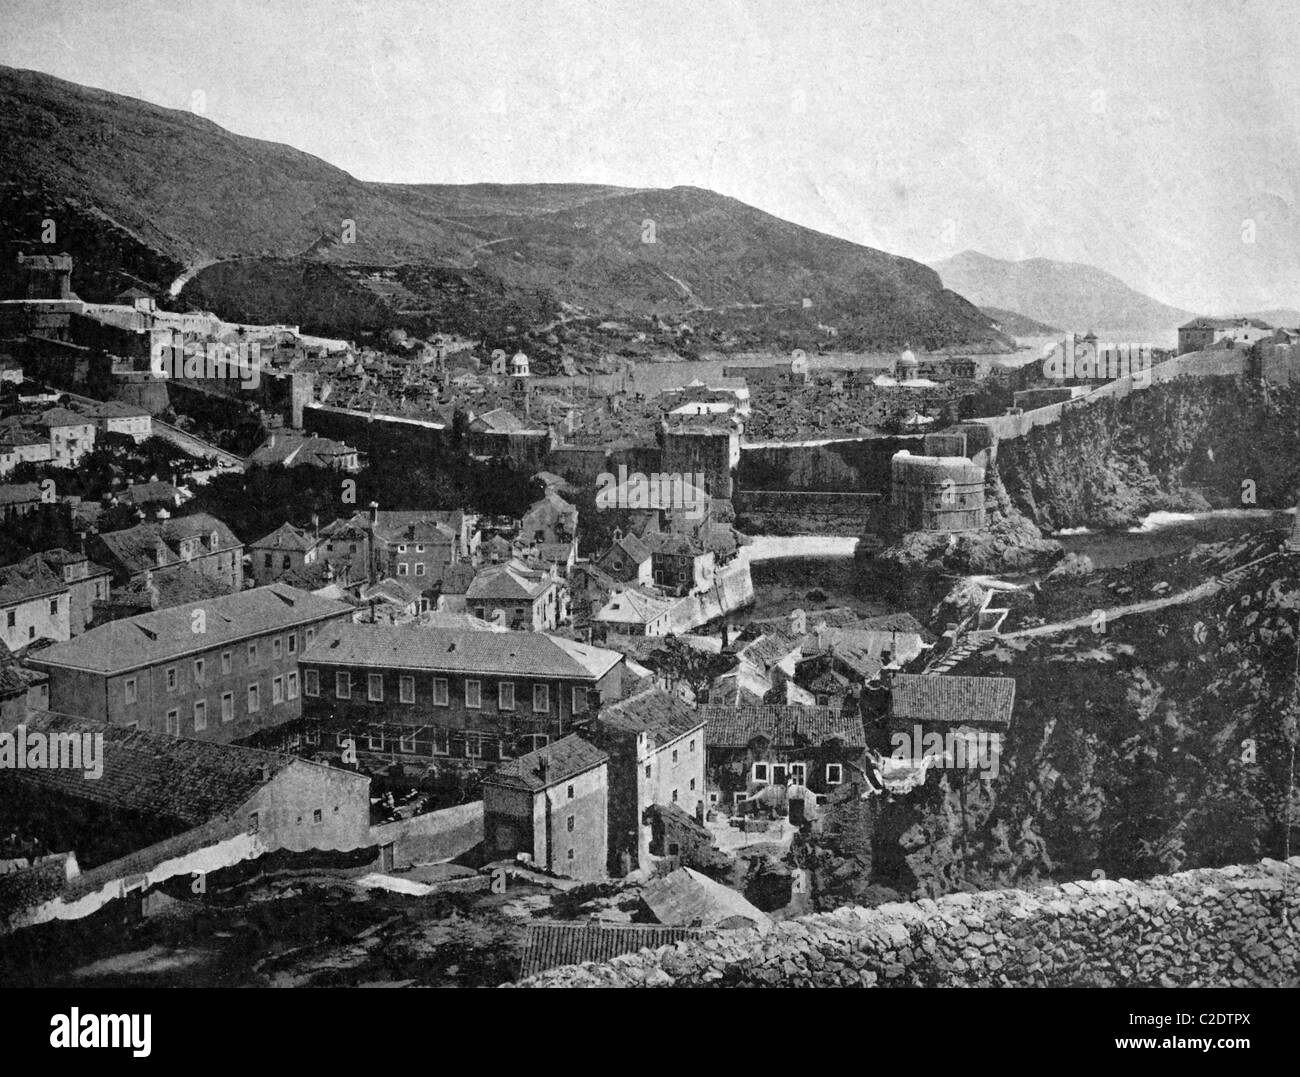 One of the first autotype prints, historic photograph, 1884, view of Ragusa, Austria, Europe - Stock Image